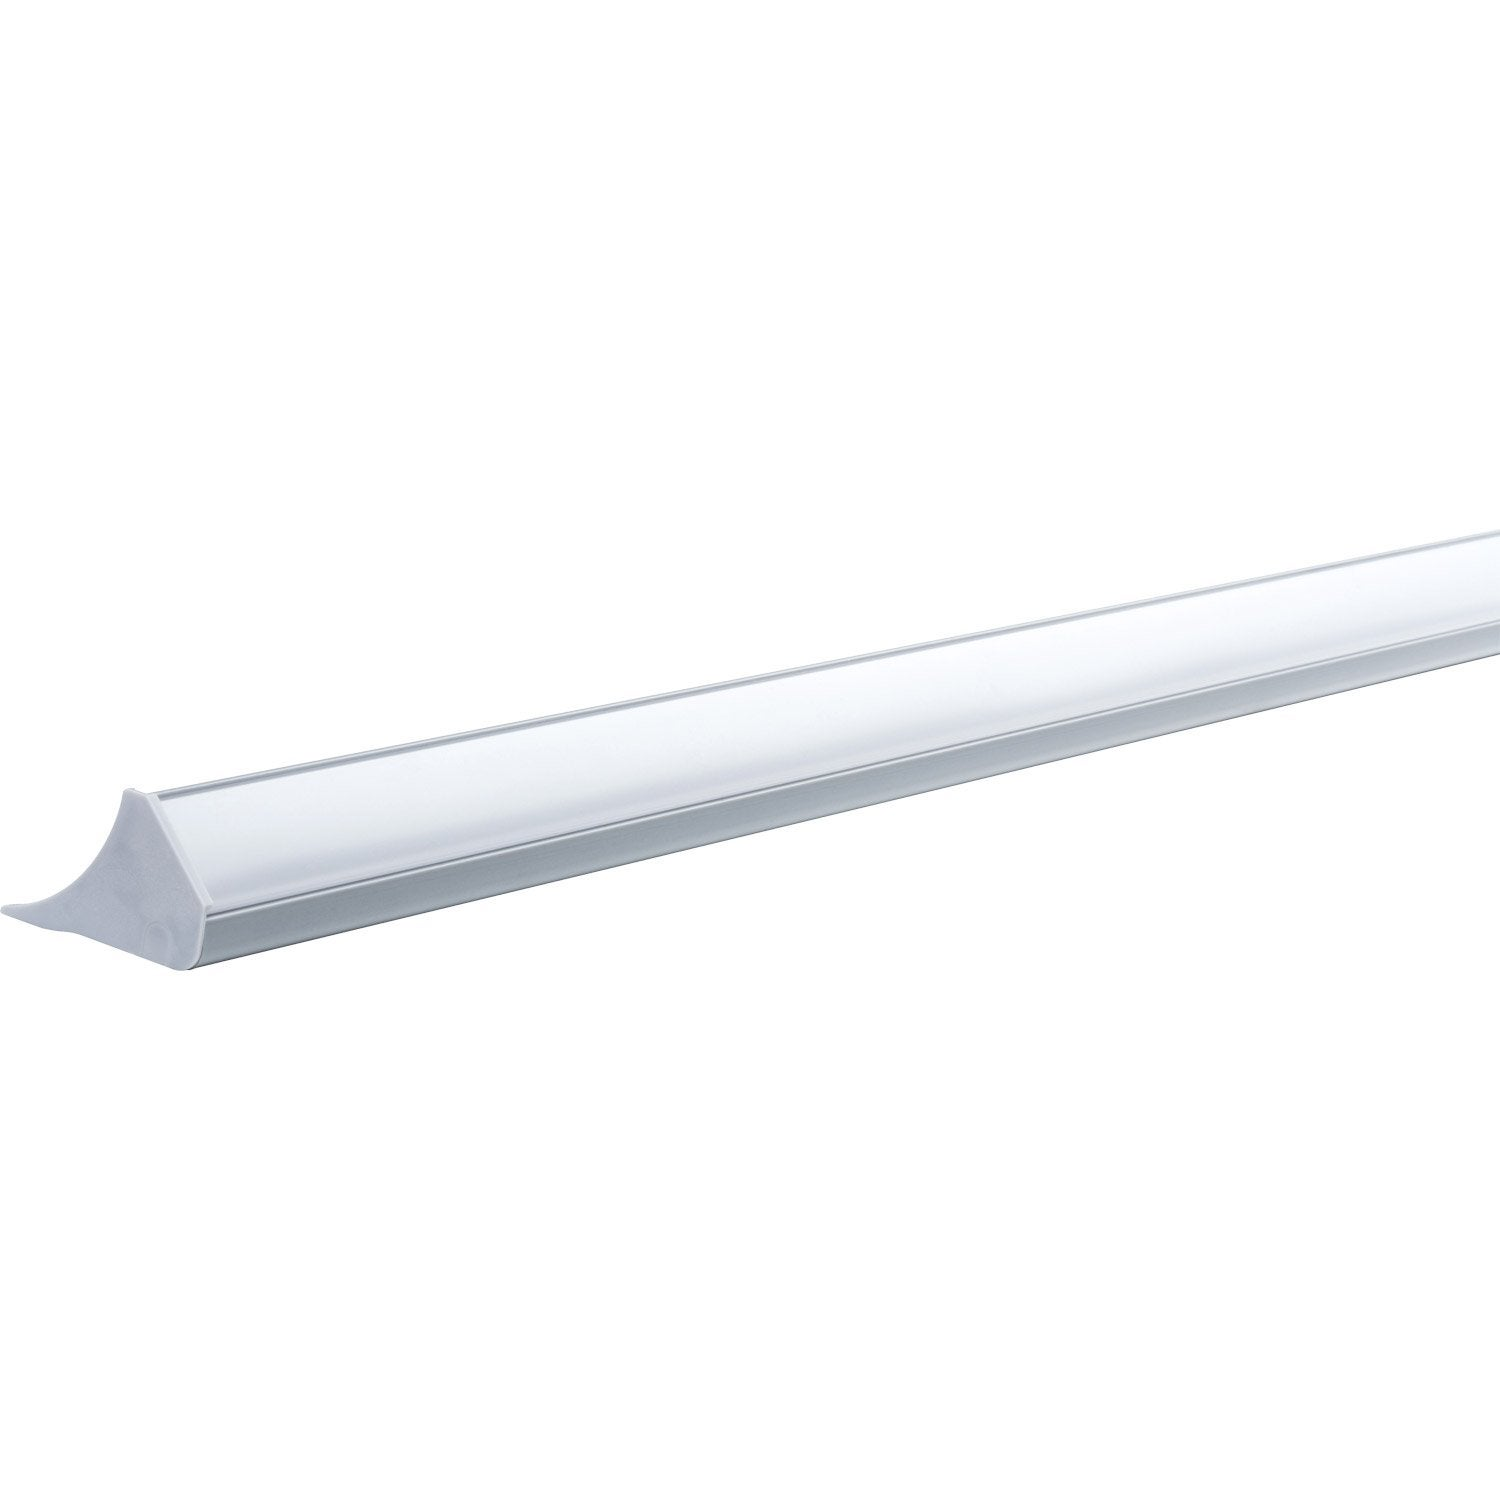 Baguette de finition ruban led fixer coller corner for Baguette finition carrelage sol